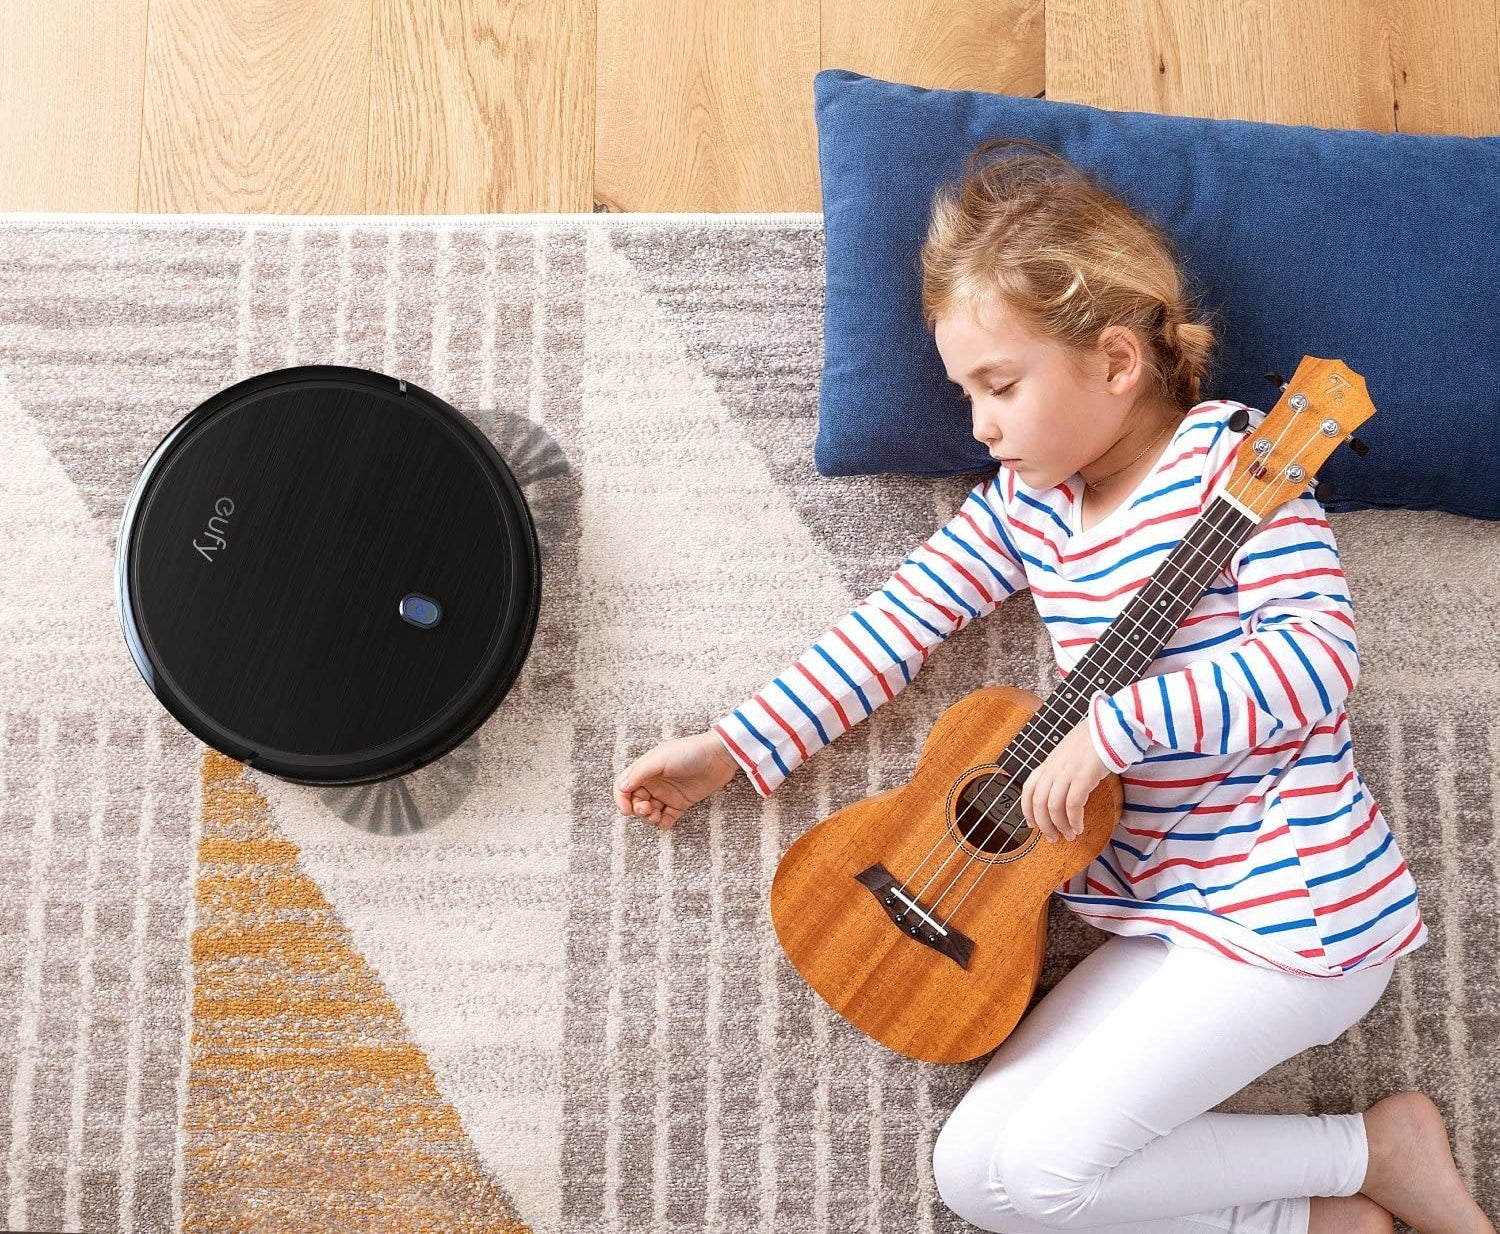 Child holding guitar and sleeping next to Eufy robotic vacuum cleaning the carpet